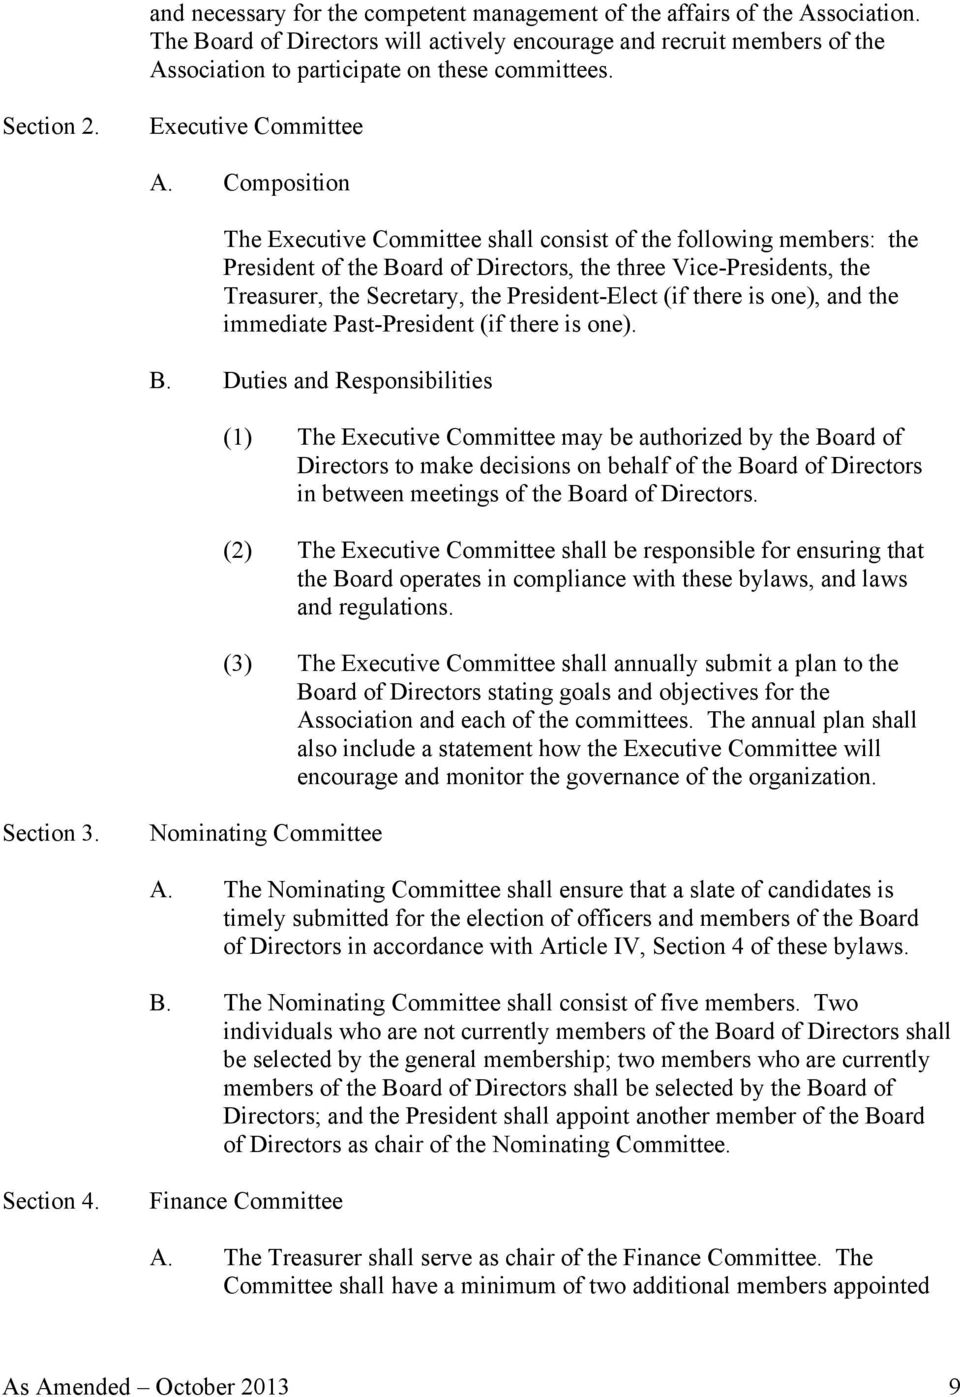 Composition The Executive Committee shall consist of the following members: the President of the Board of Directors, the three Vice-Presidents, the Treasurer, the Secretary, the President-Elect (if